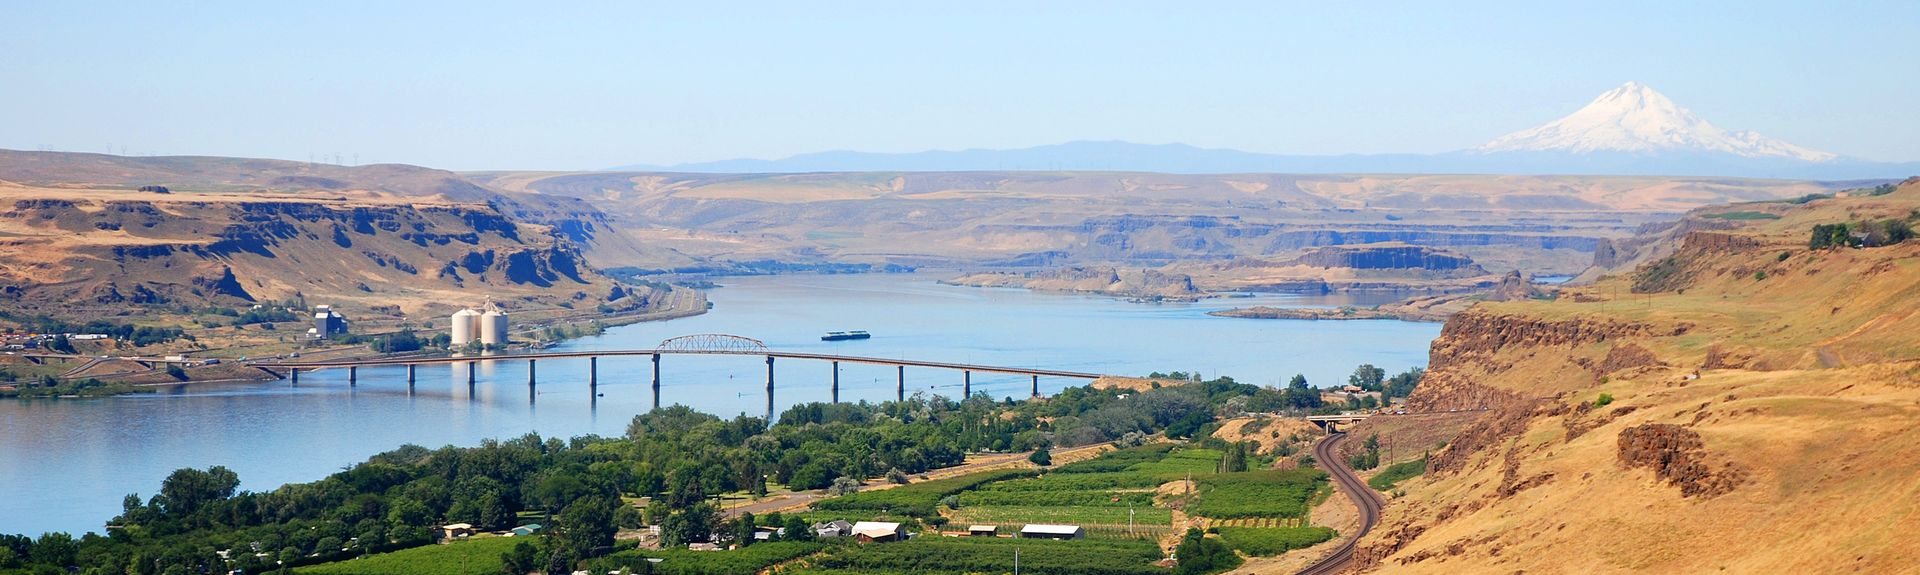 The Dalles, OR, USA